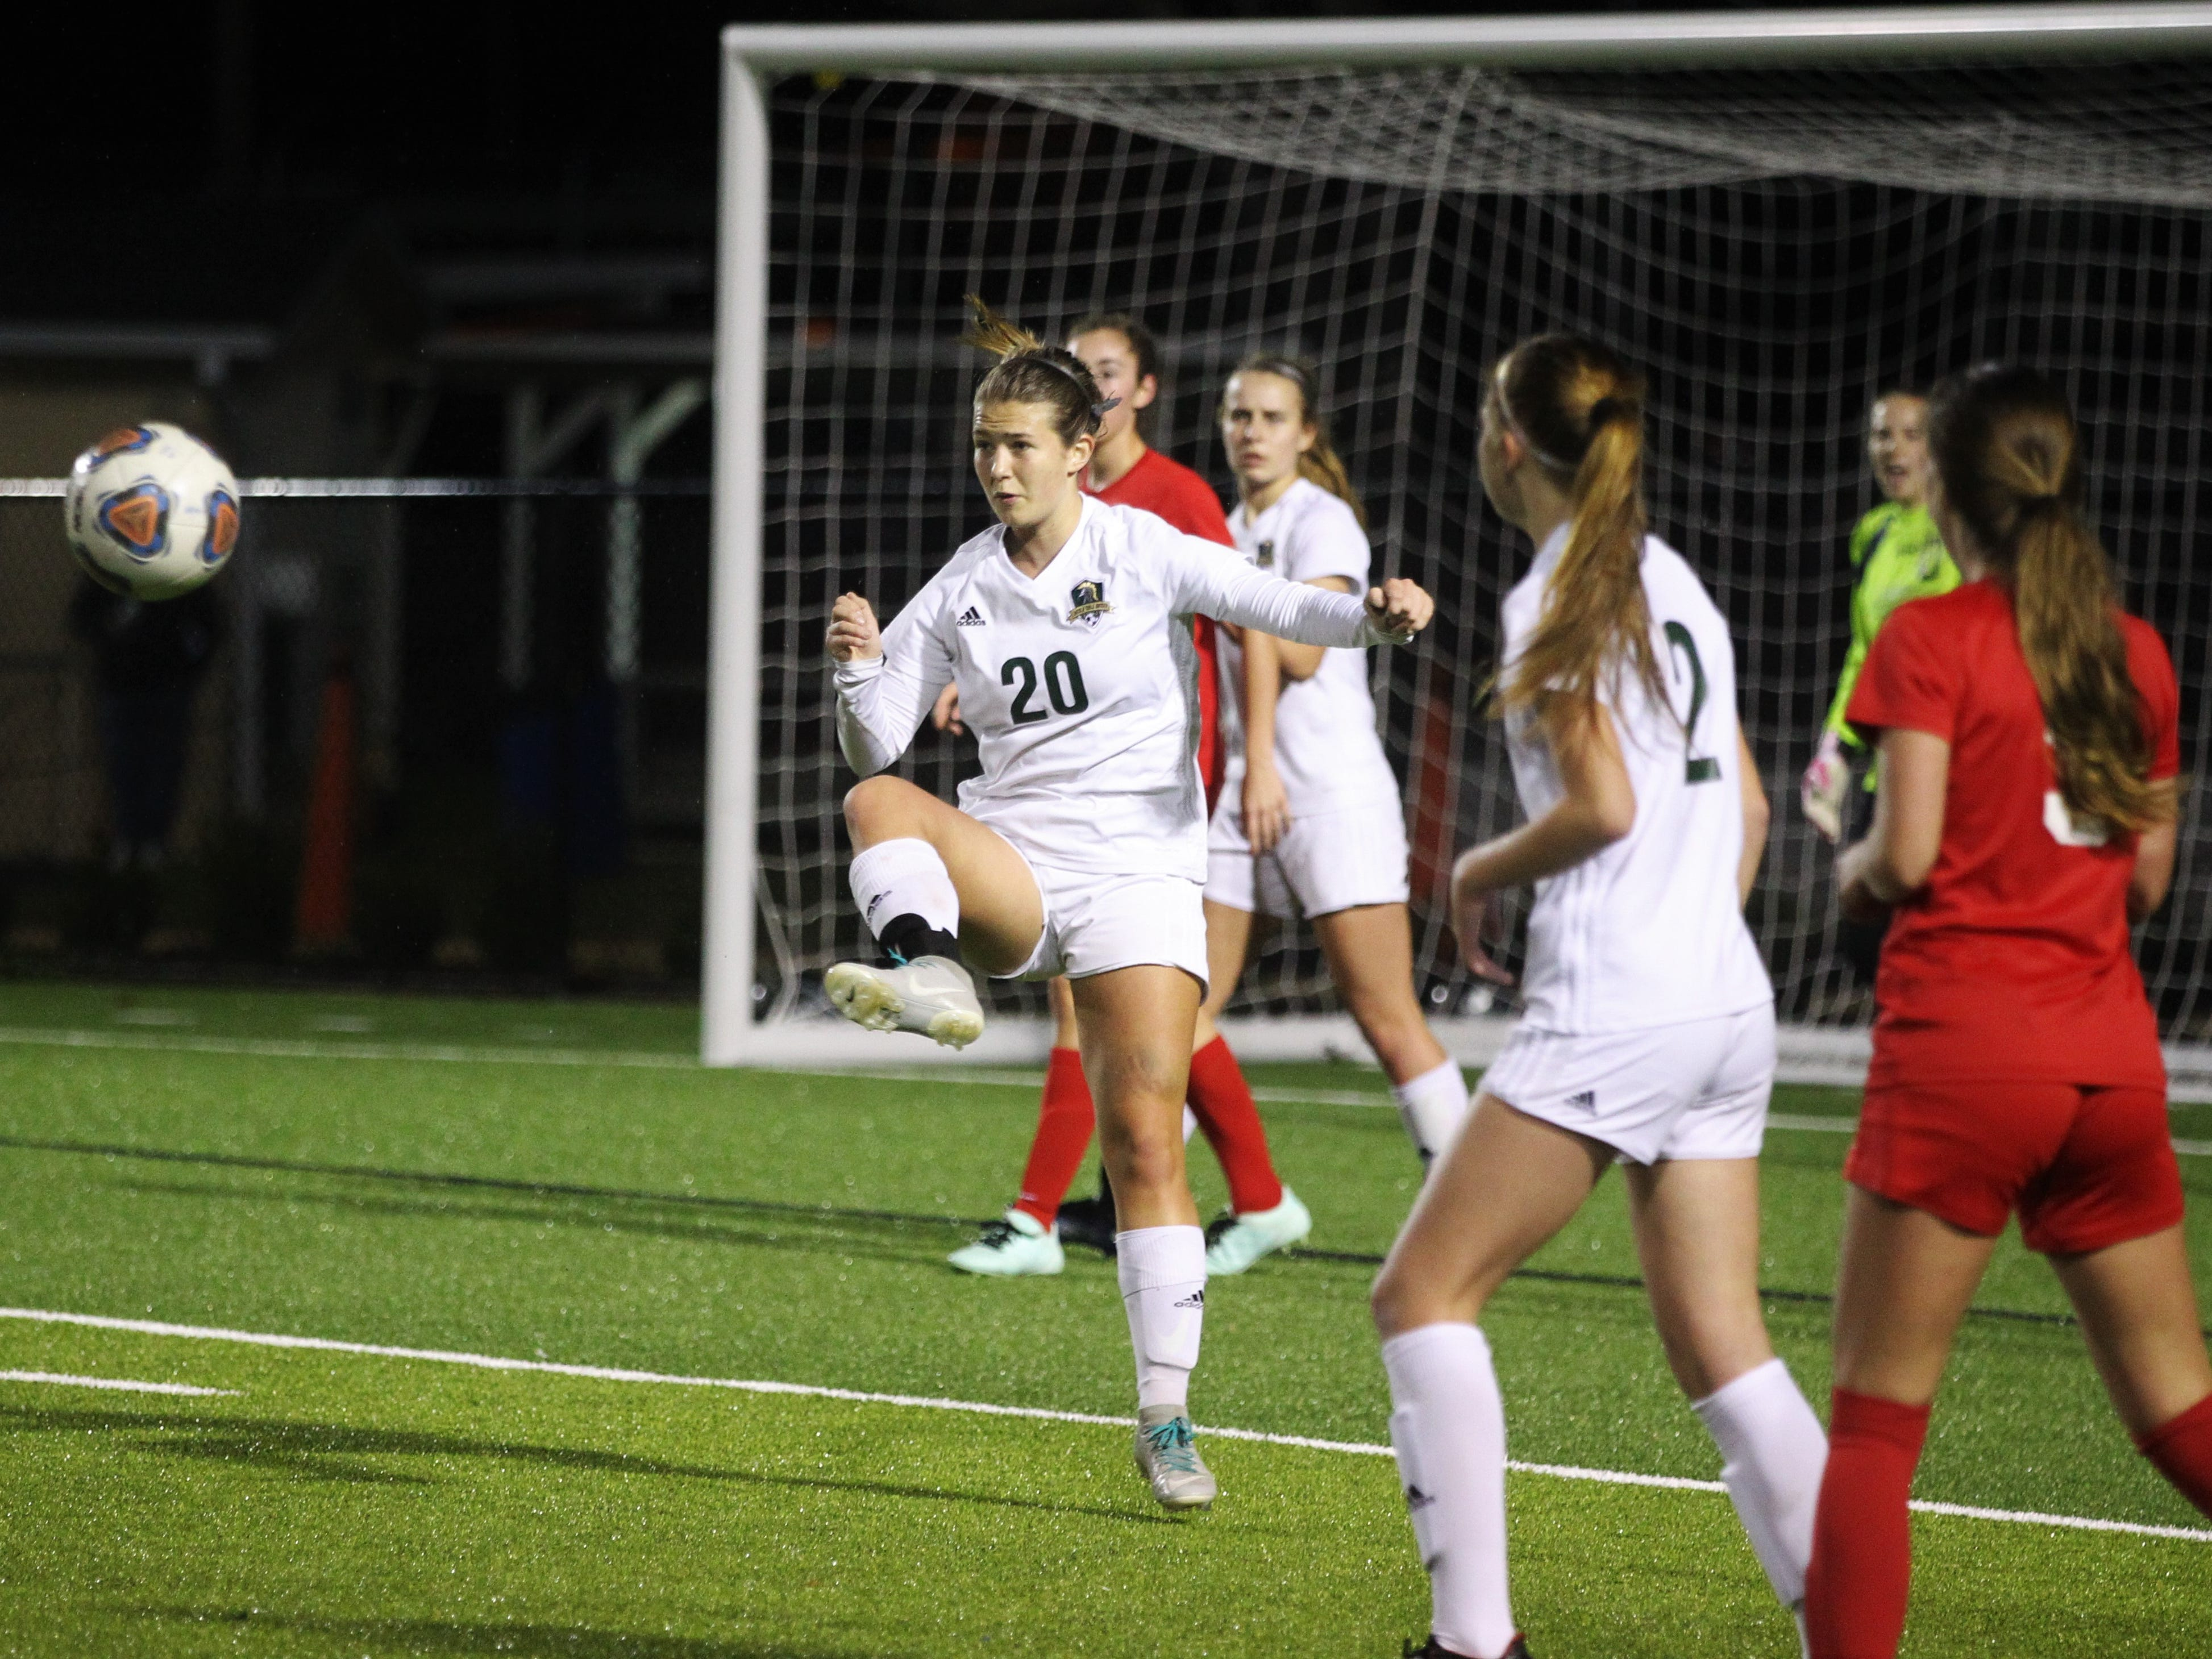 Lincoln defender Katherine Whichel clears a ball out of the box as Leon's girls soccer team beat Lincoln in the District 2-4A championship on Feb. 1, 2019.